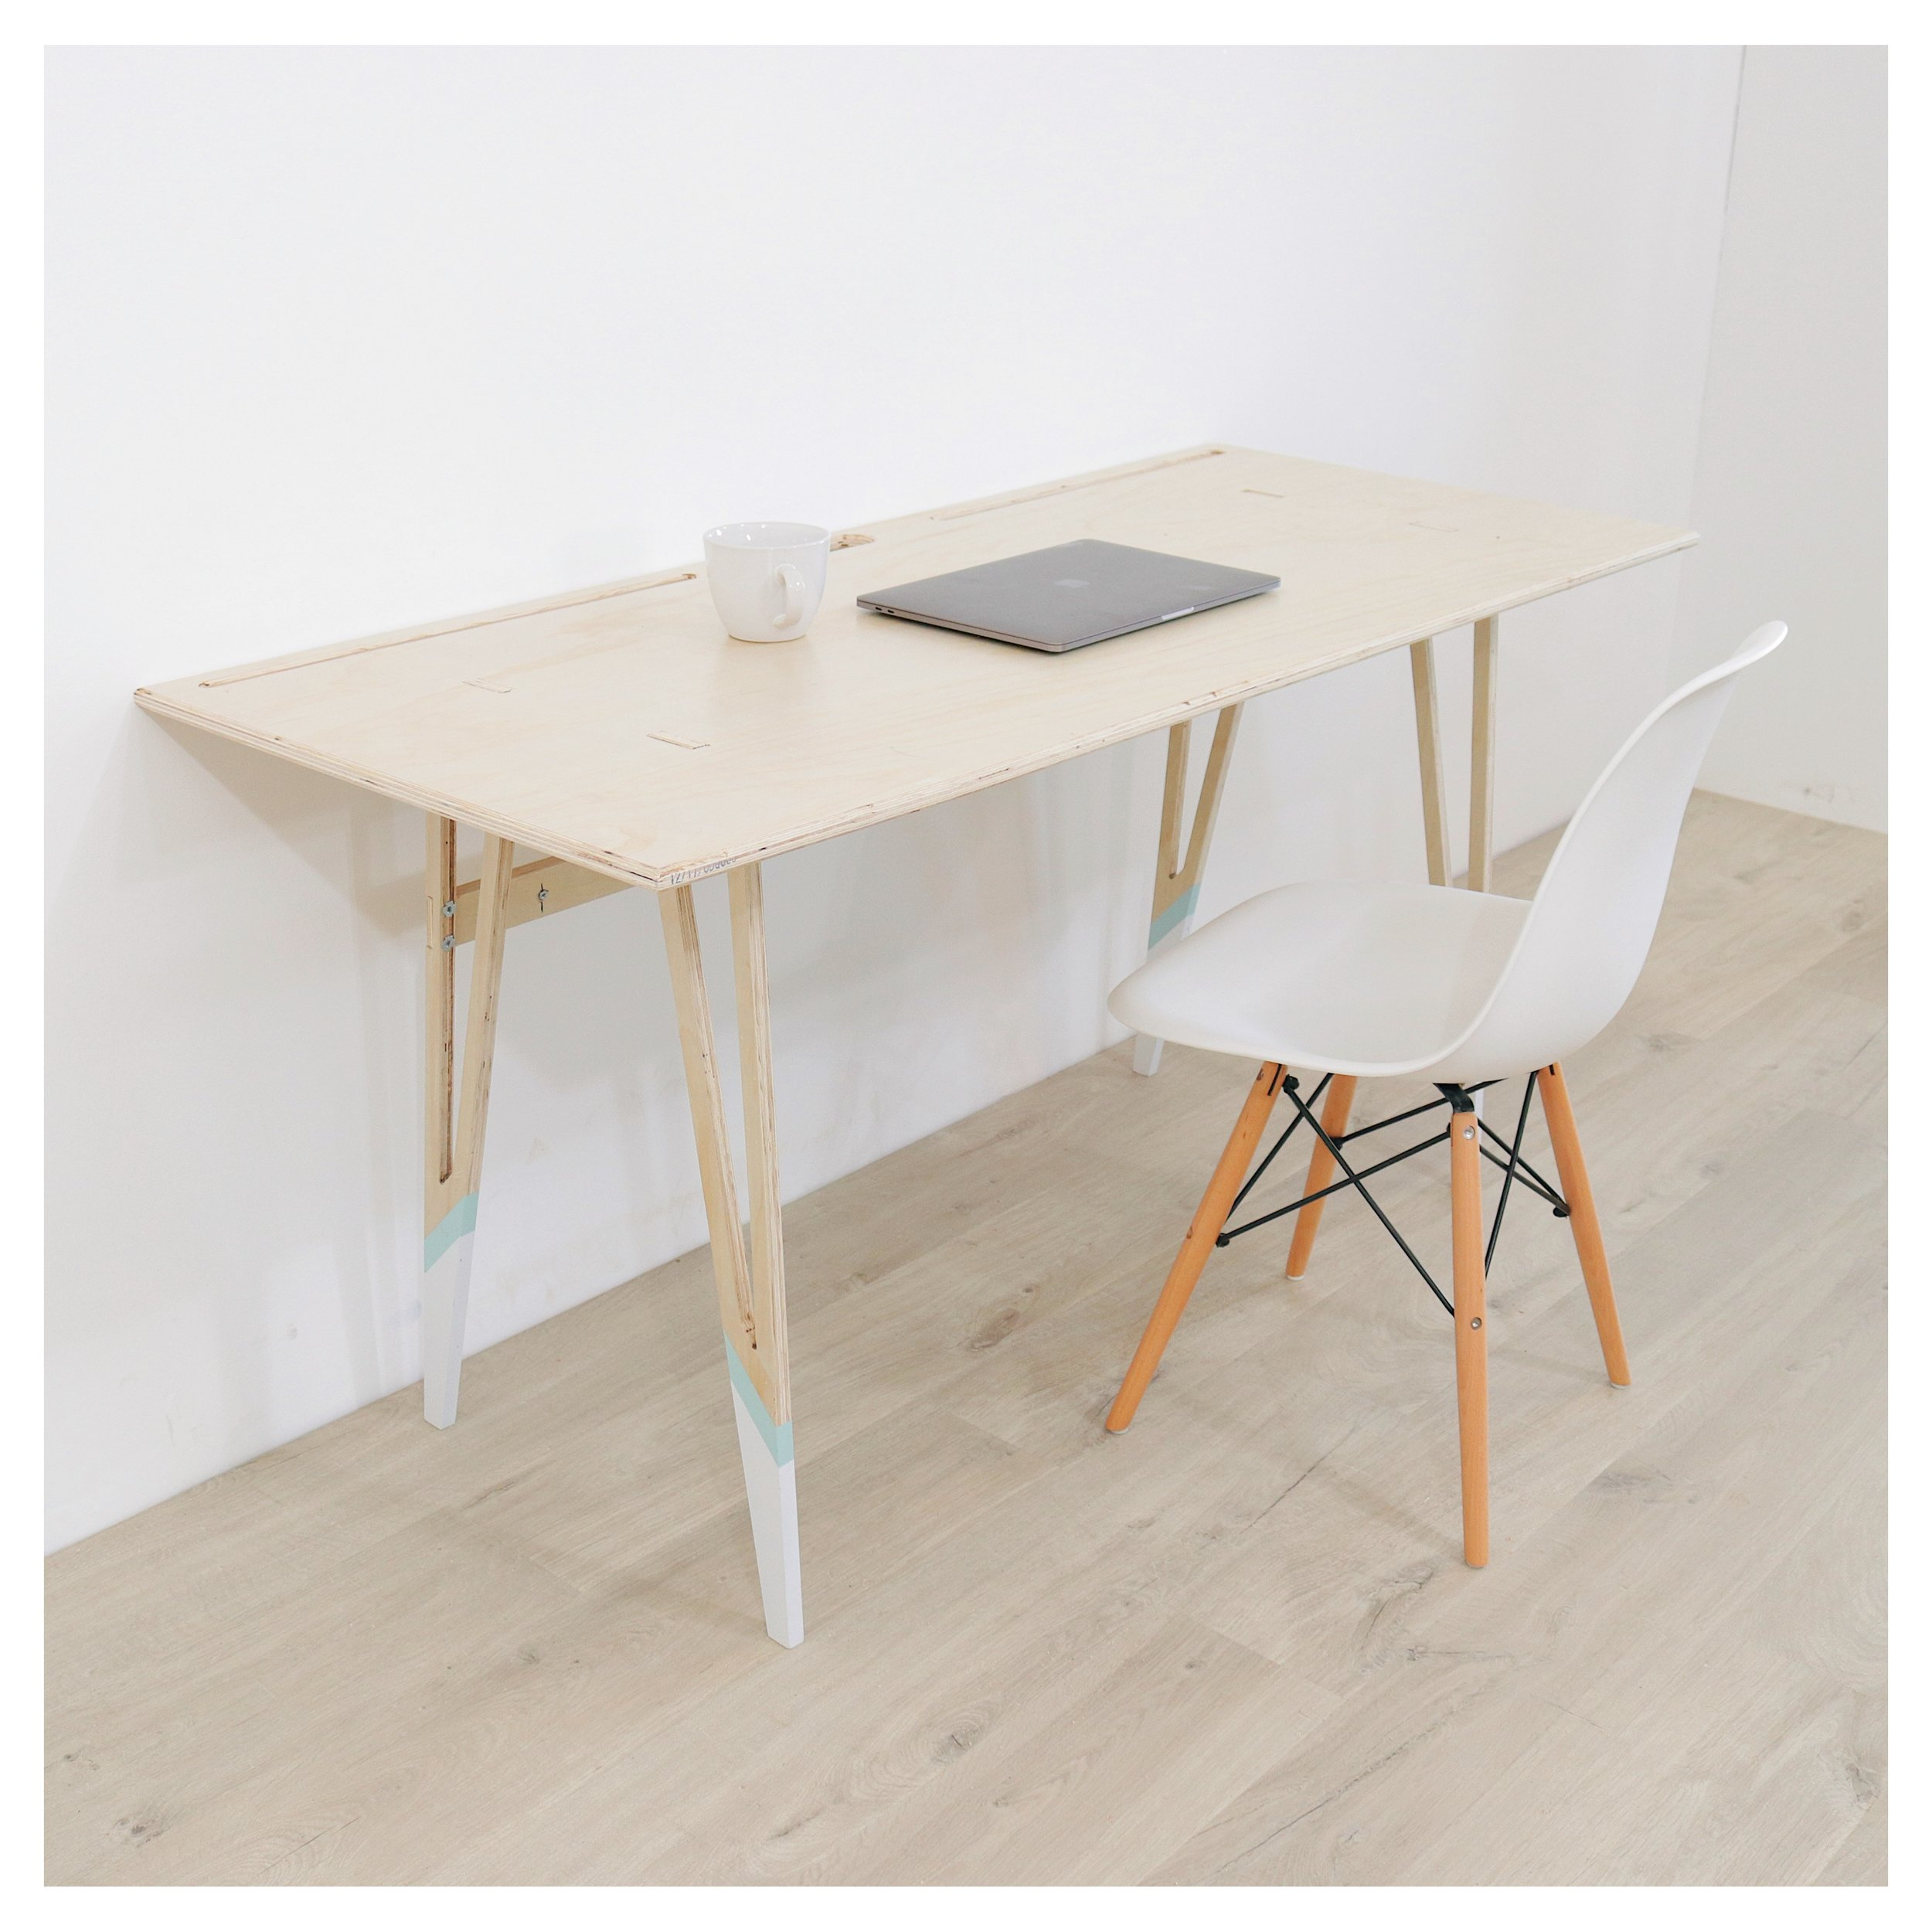 DIY PORTABLE PLYWOOD DESK